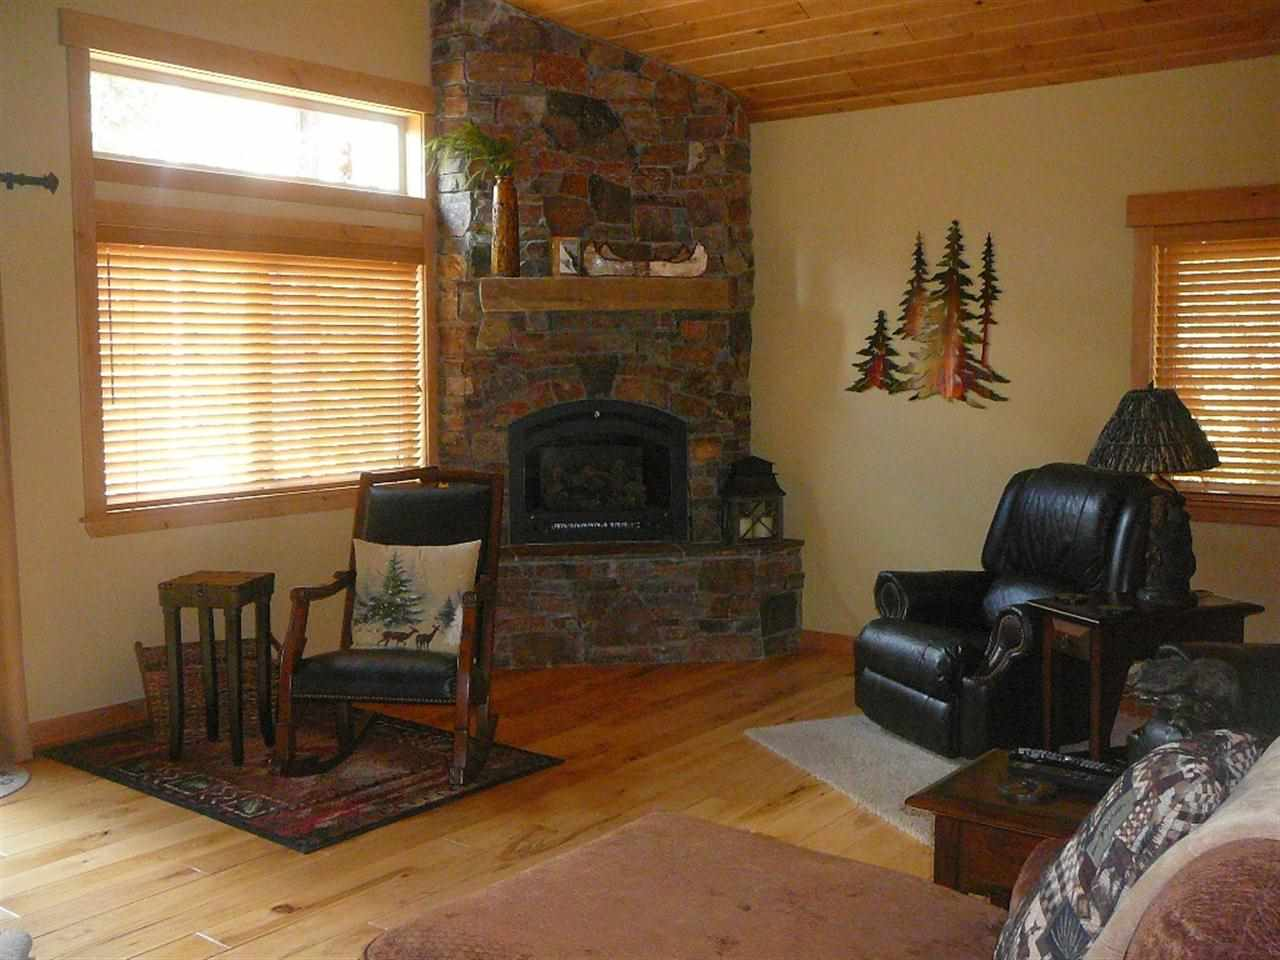 Additional photo for property listing at 11721 Lausanne Way  Truckee, California 96161 Estados Unidos